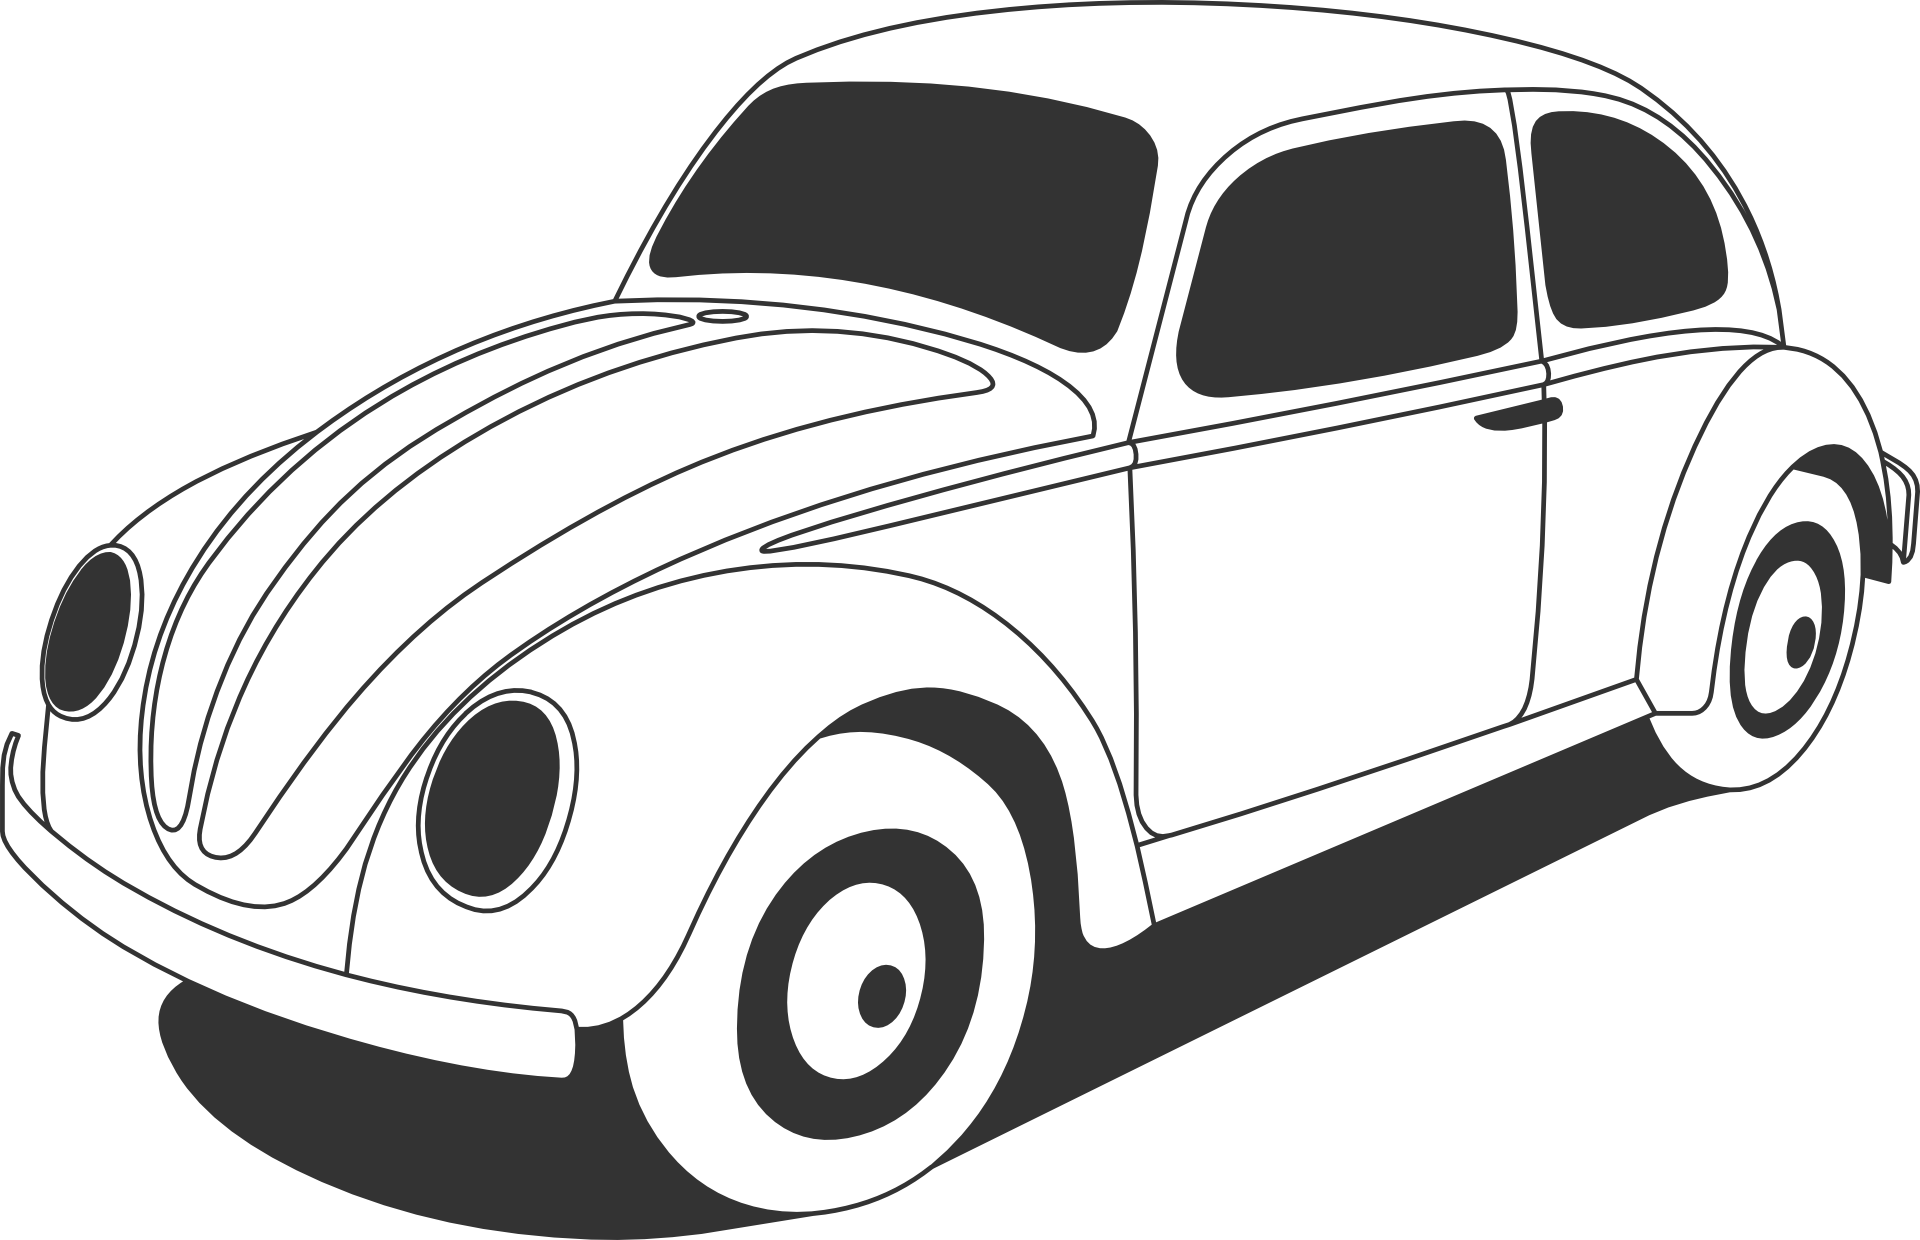 Drawing Of A White Volkswagen Beetle Free Image